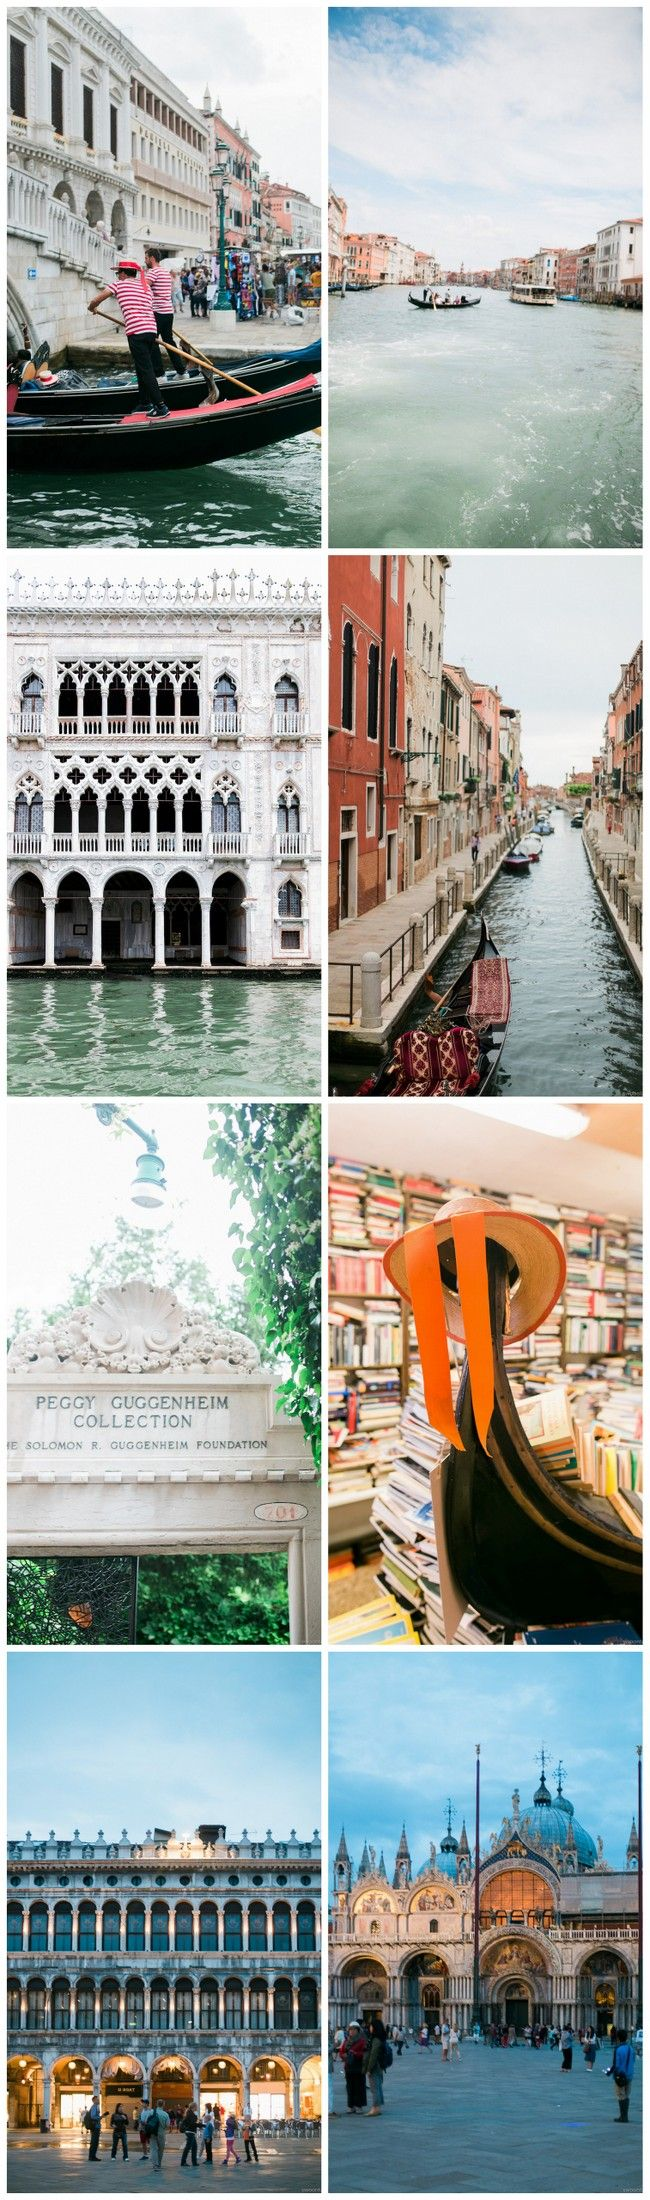 15 Unforgettable Things to do in Venice Italy! Seeking epic things to do in Venice, Italy? Cruise the Grand Canal on a Vaporetto, visit St Mark's Basilica, catch duelling night orchestras in the square or take gondola under the Bridge of Sighs!